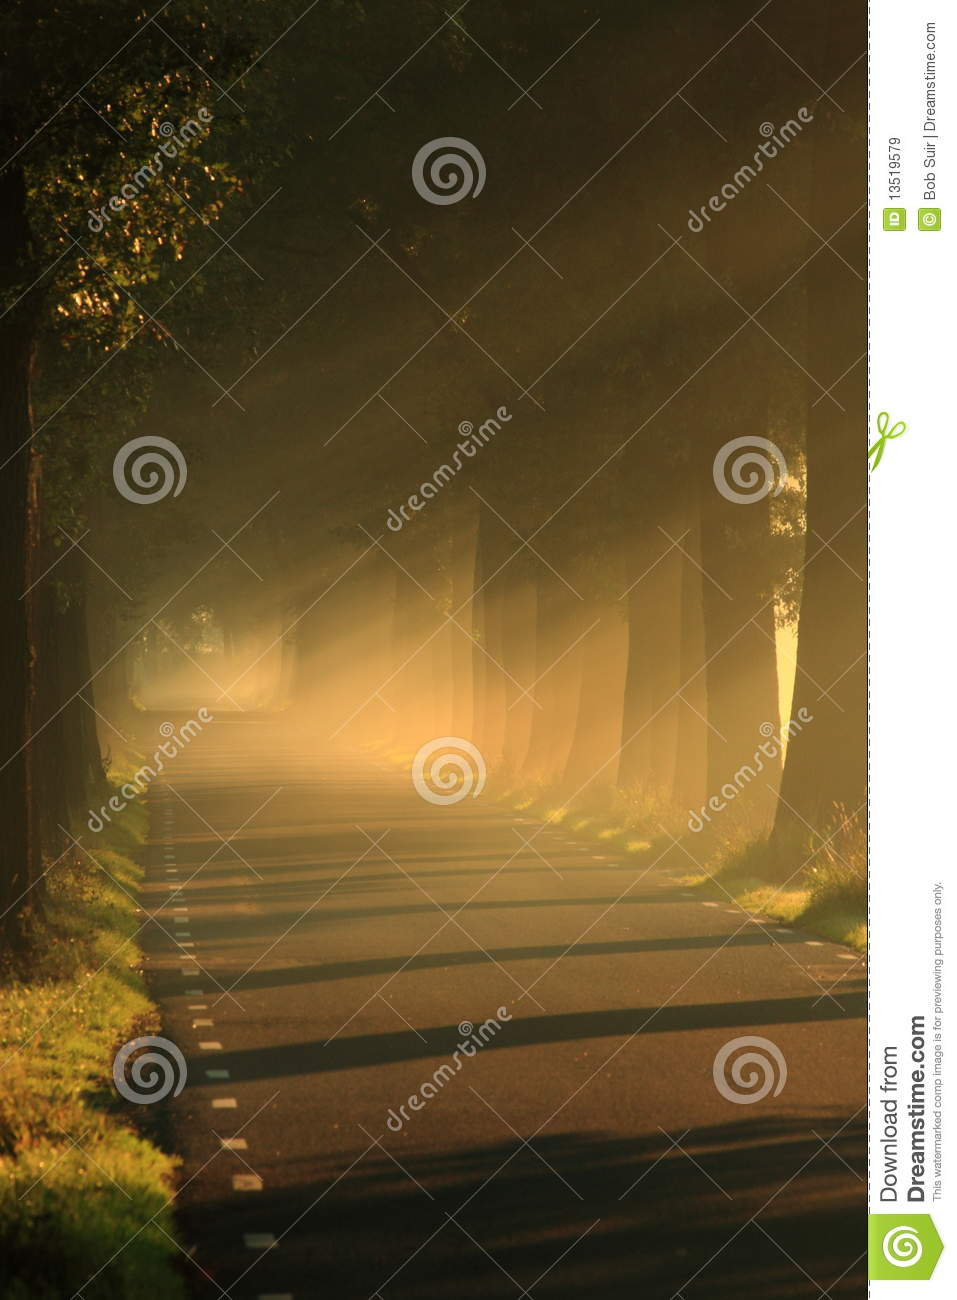 Light on the road with trees